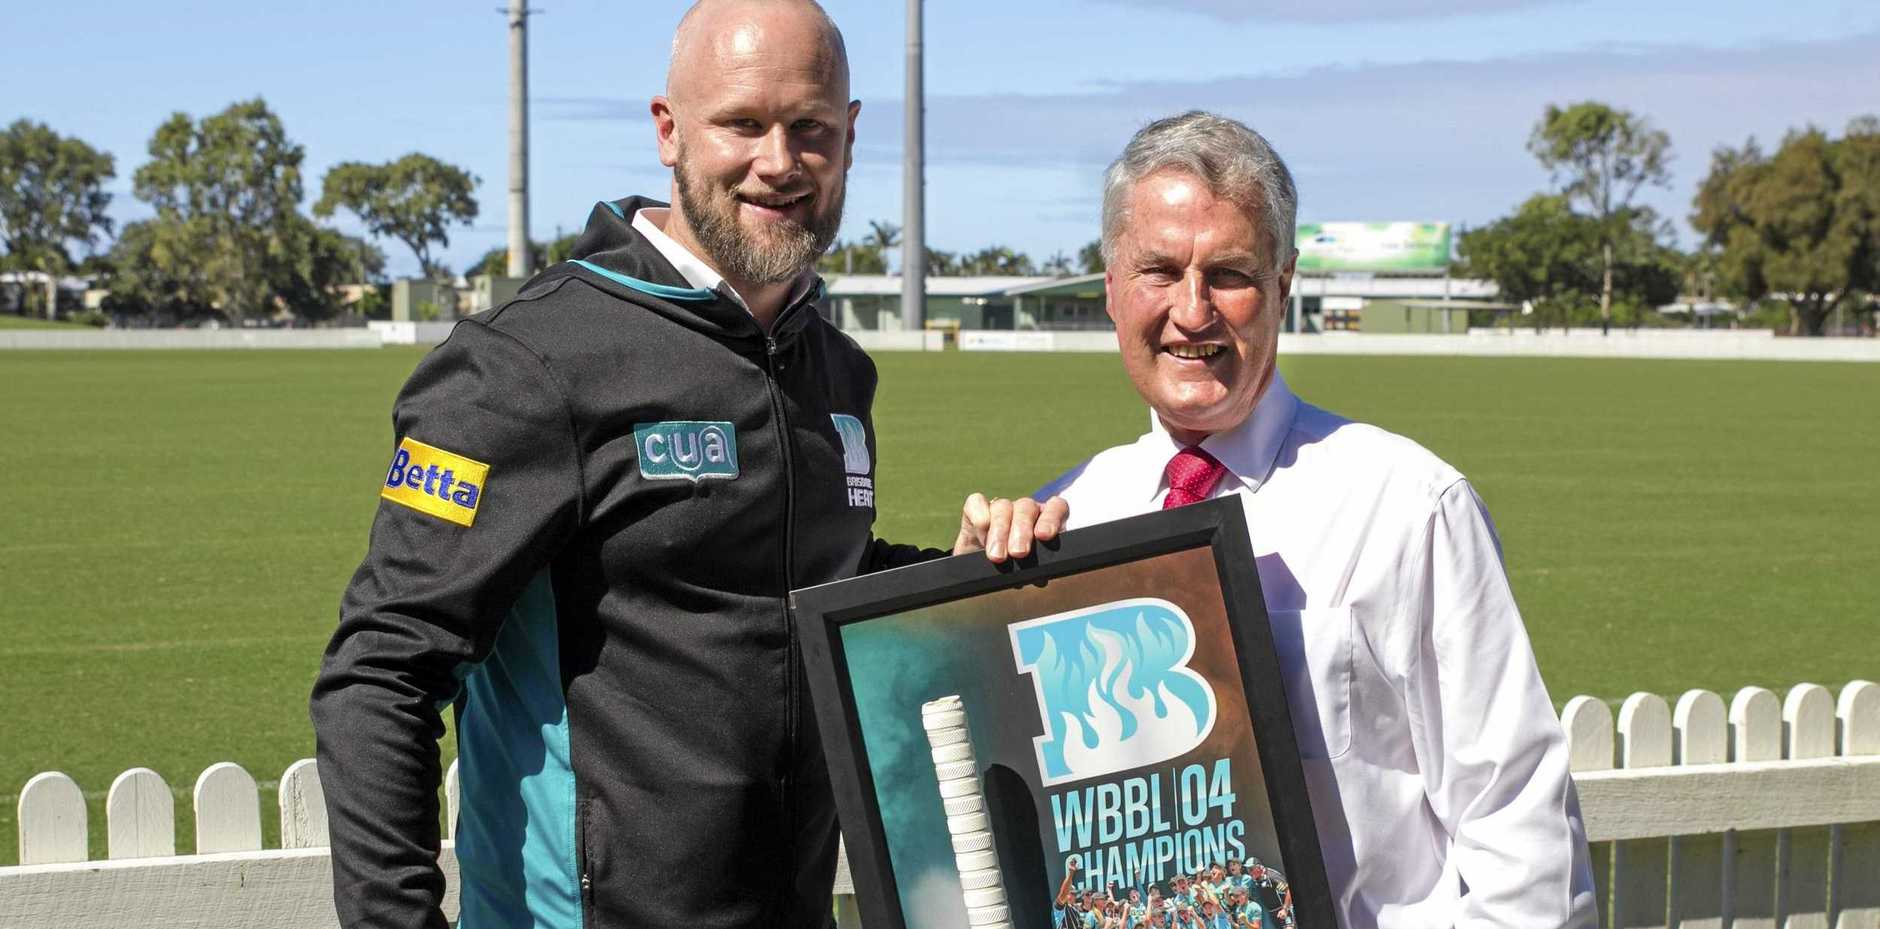 General manager of Brisbane Heat, Andrew McShea, handing over a signed bat from the 2018-19 WBBL winning team to Mackay Mayor Greg Williamson at Harrup Park.